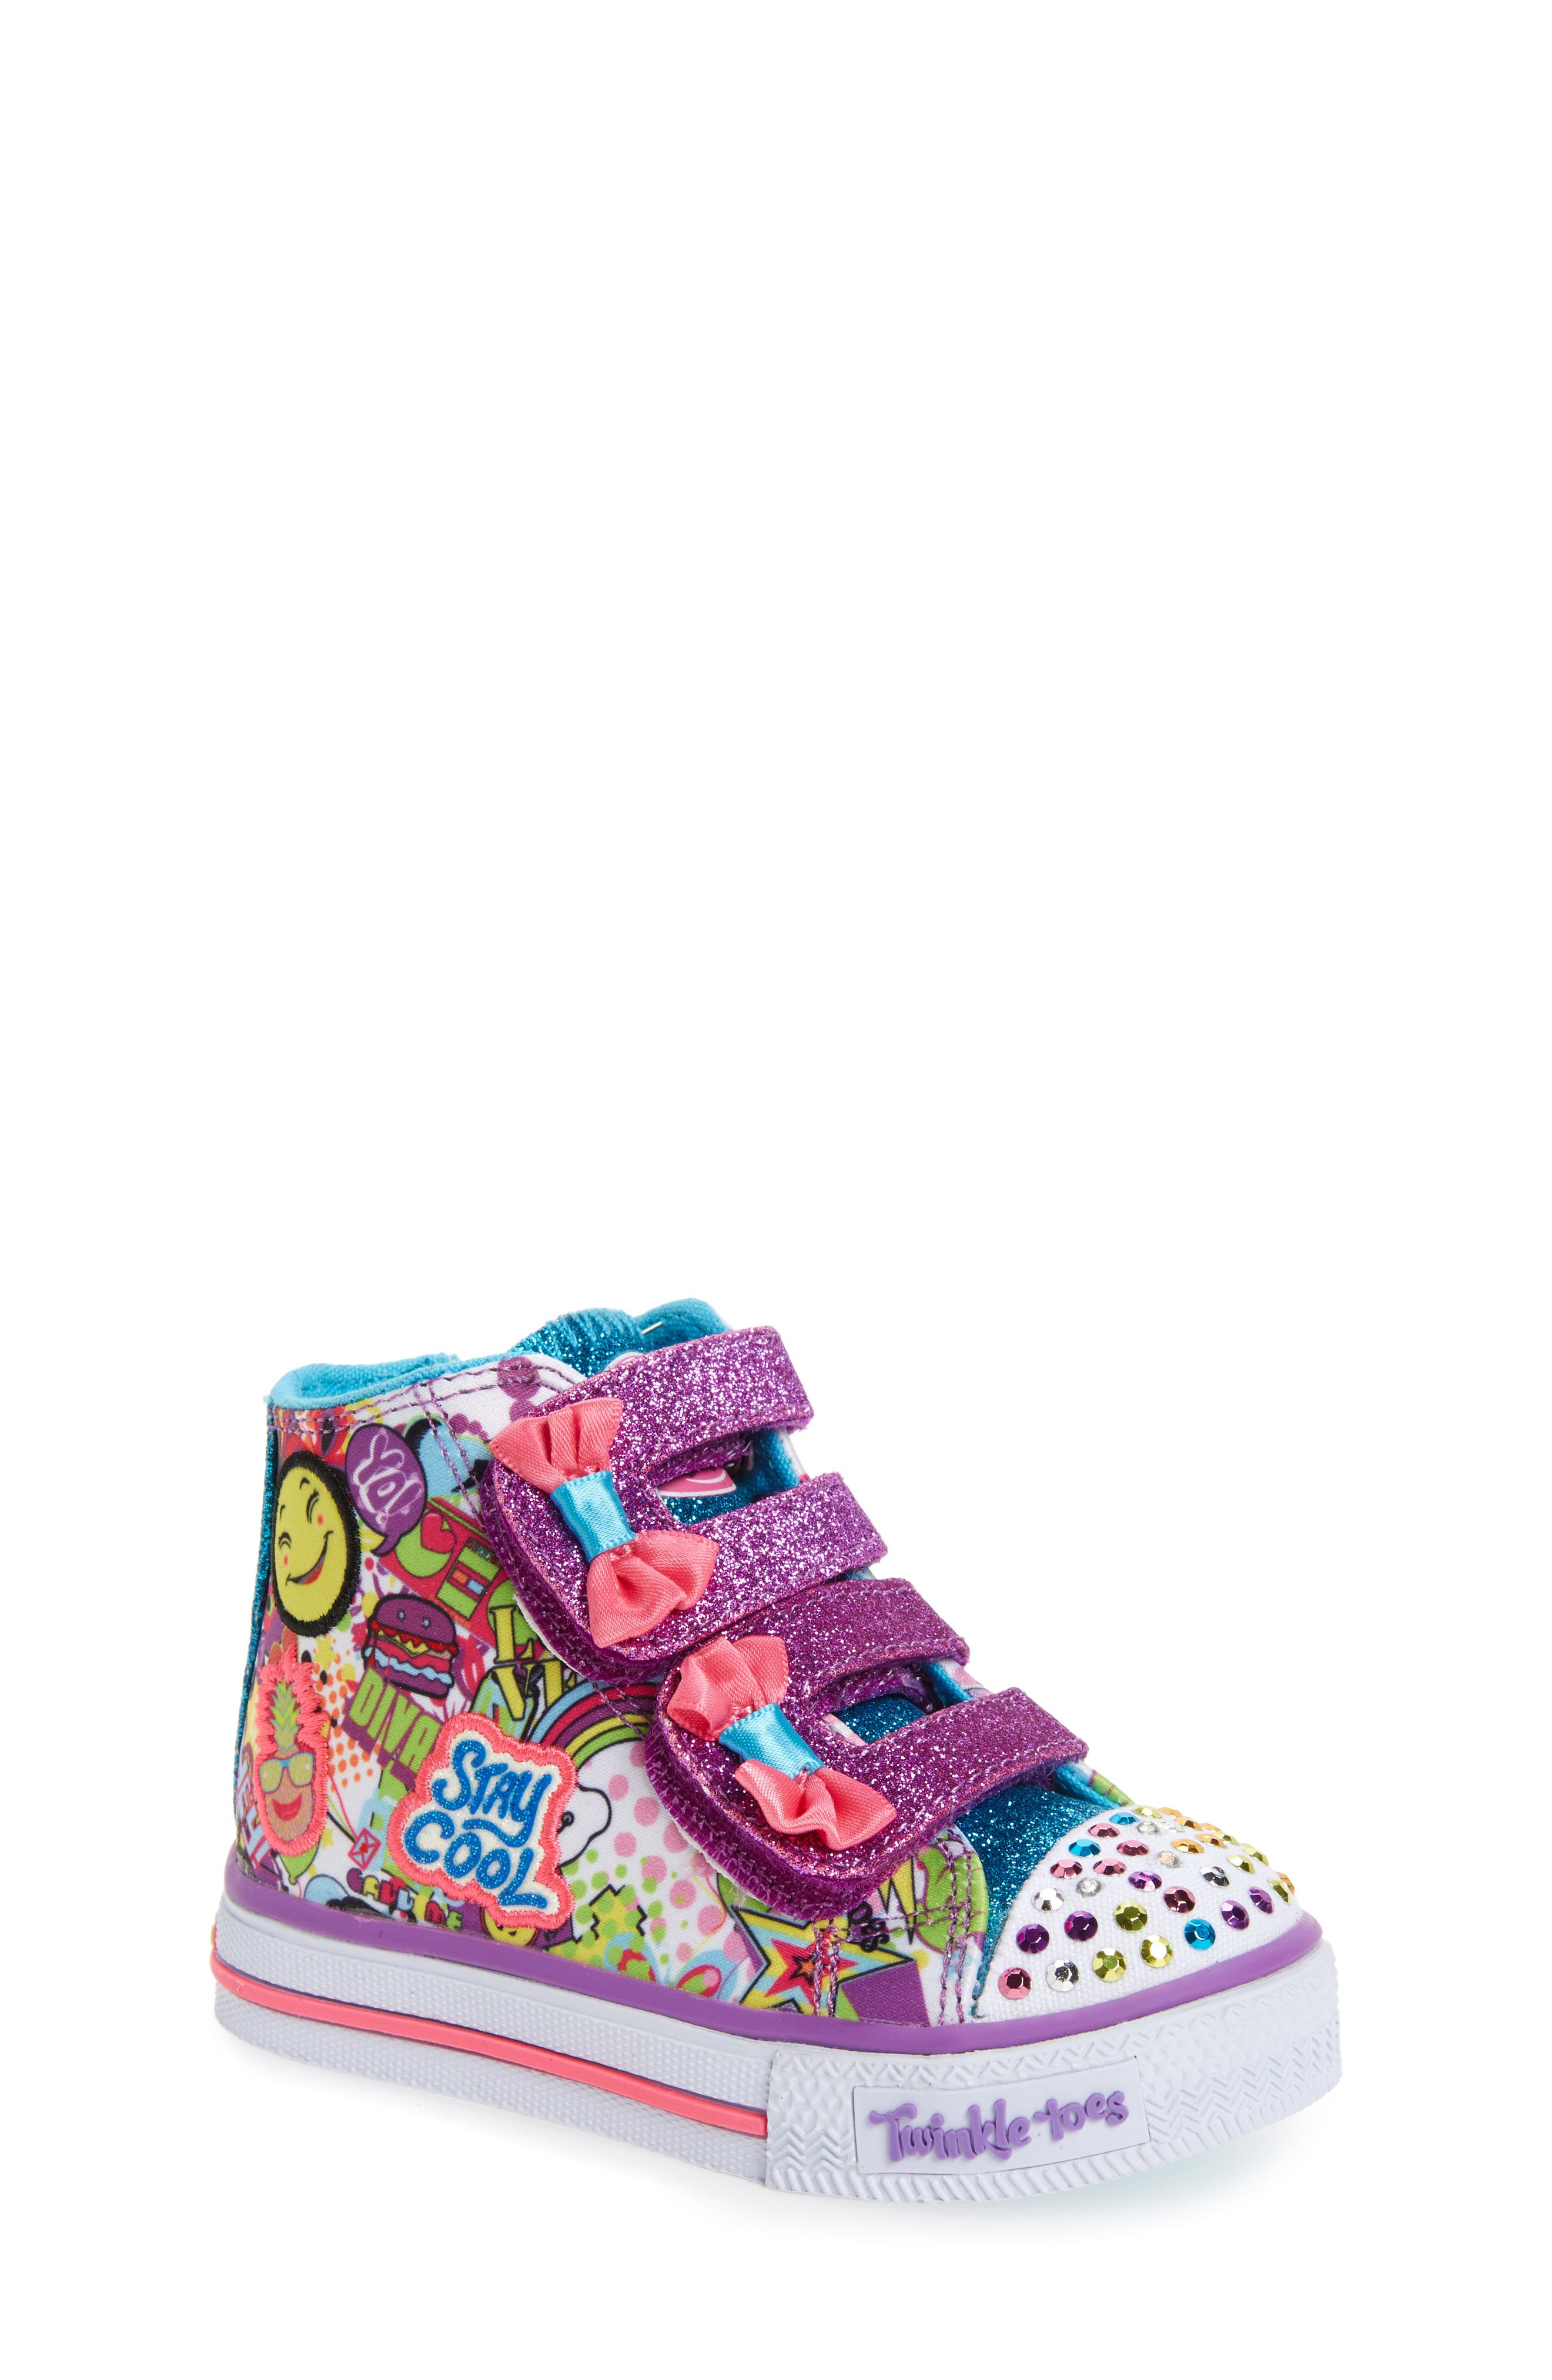 SKECHERS Twinkle Toes Shuffles Light-Up Sneaker (Walker & Toddler)